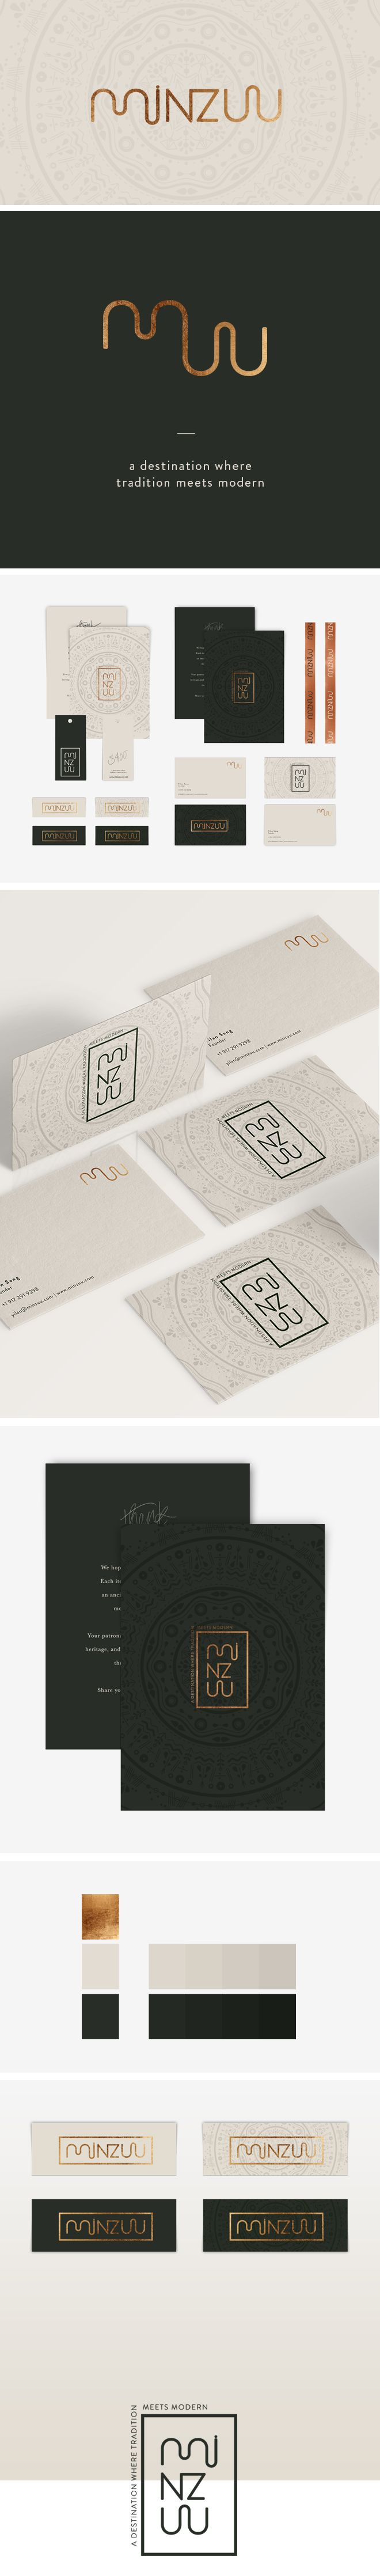 Cocorrina: NEW IN PORTFOLIO: MINZUU BRANDING